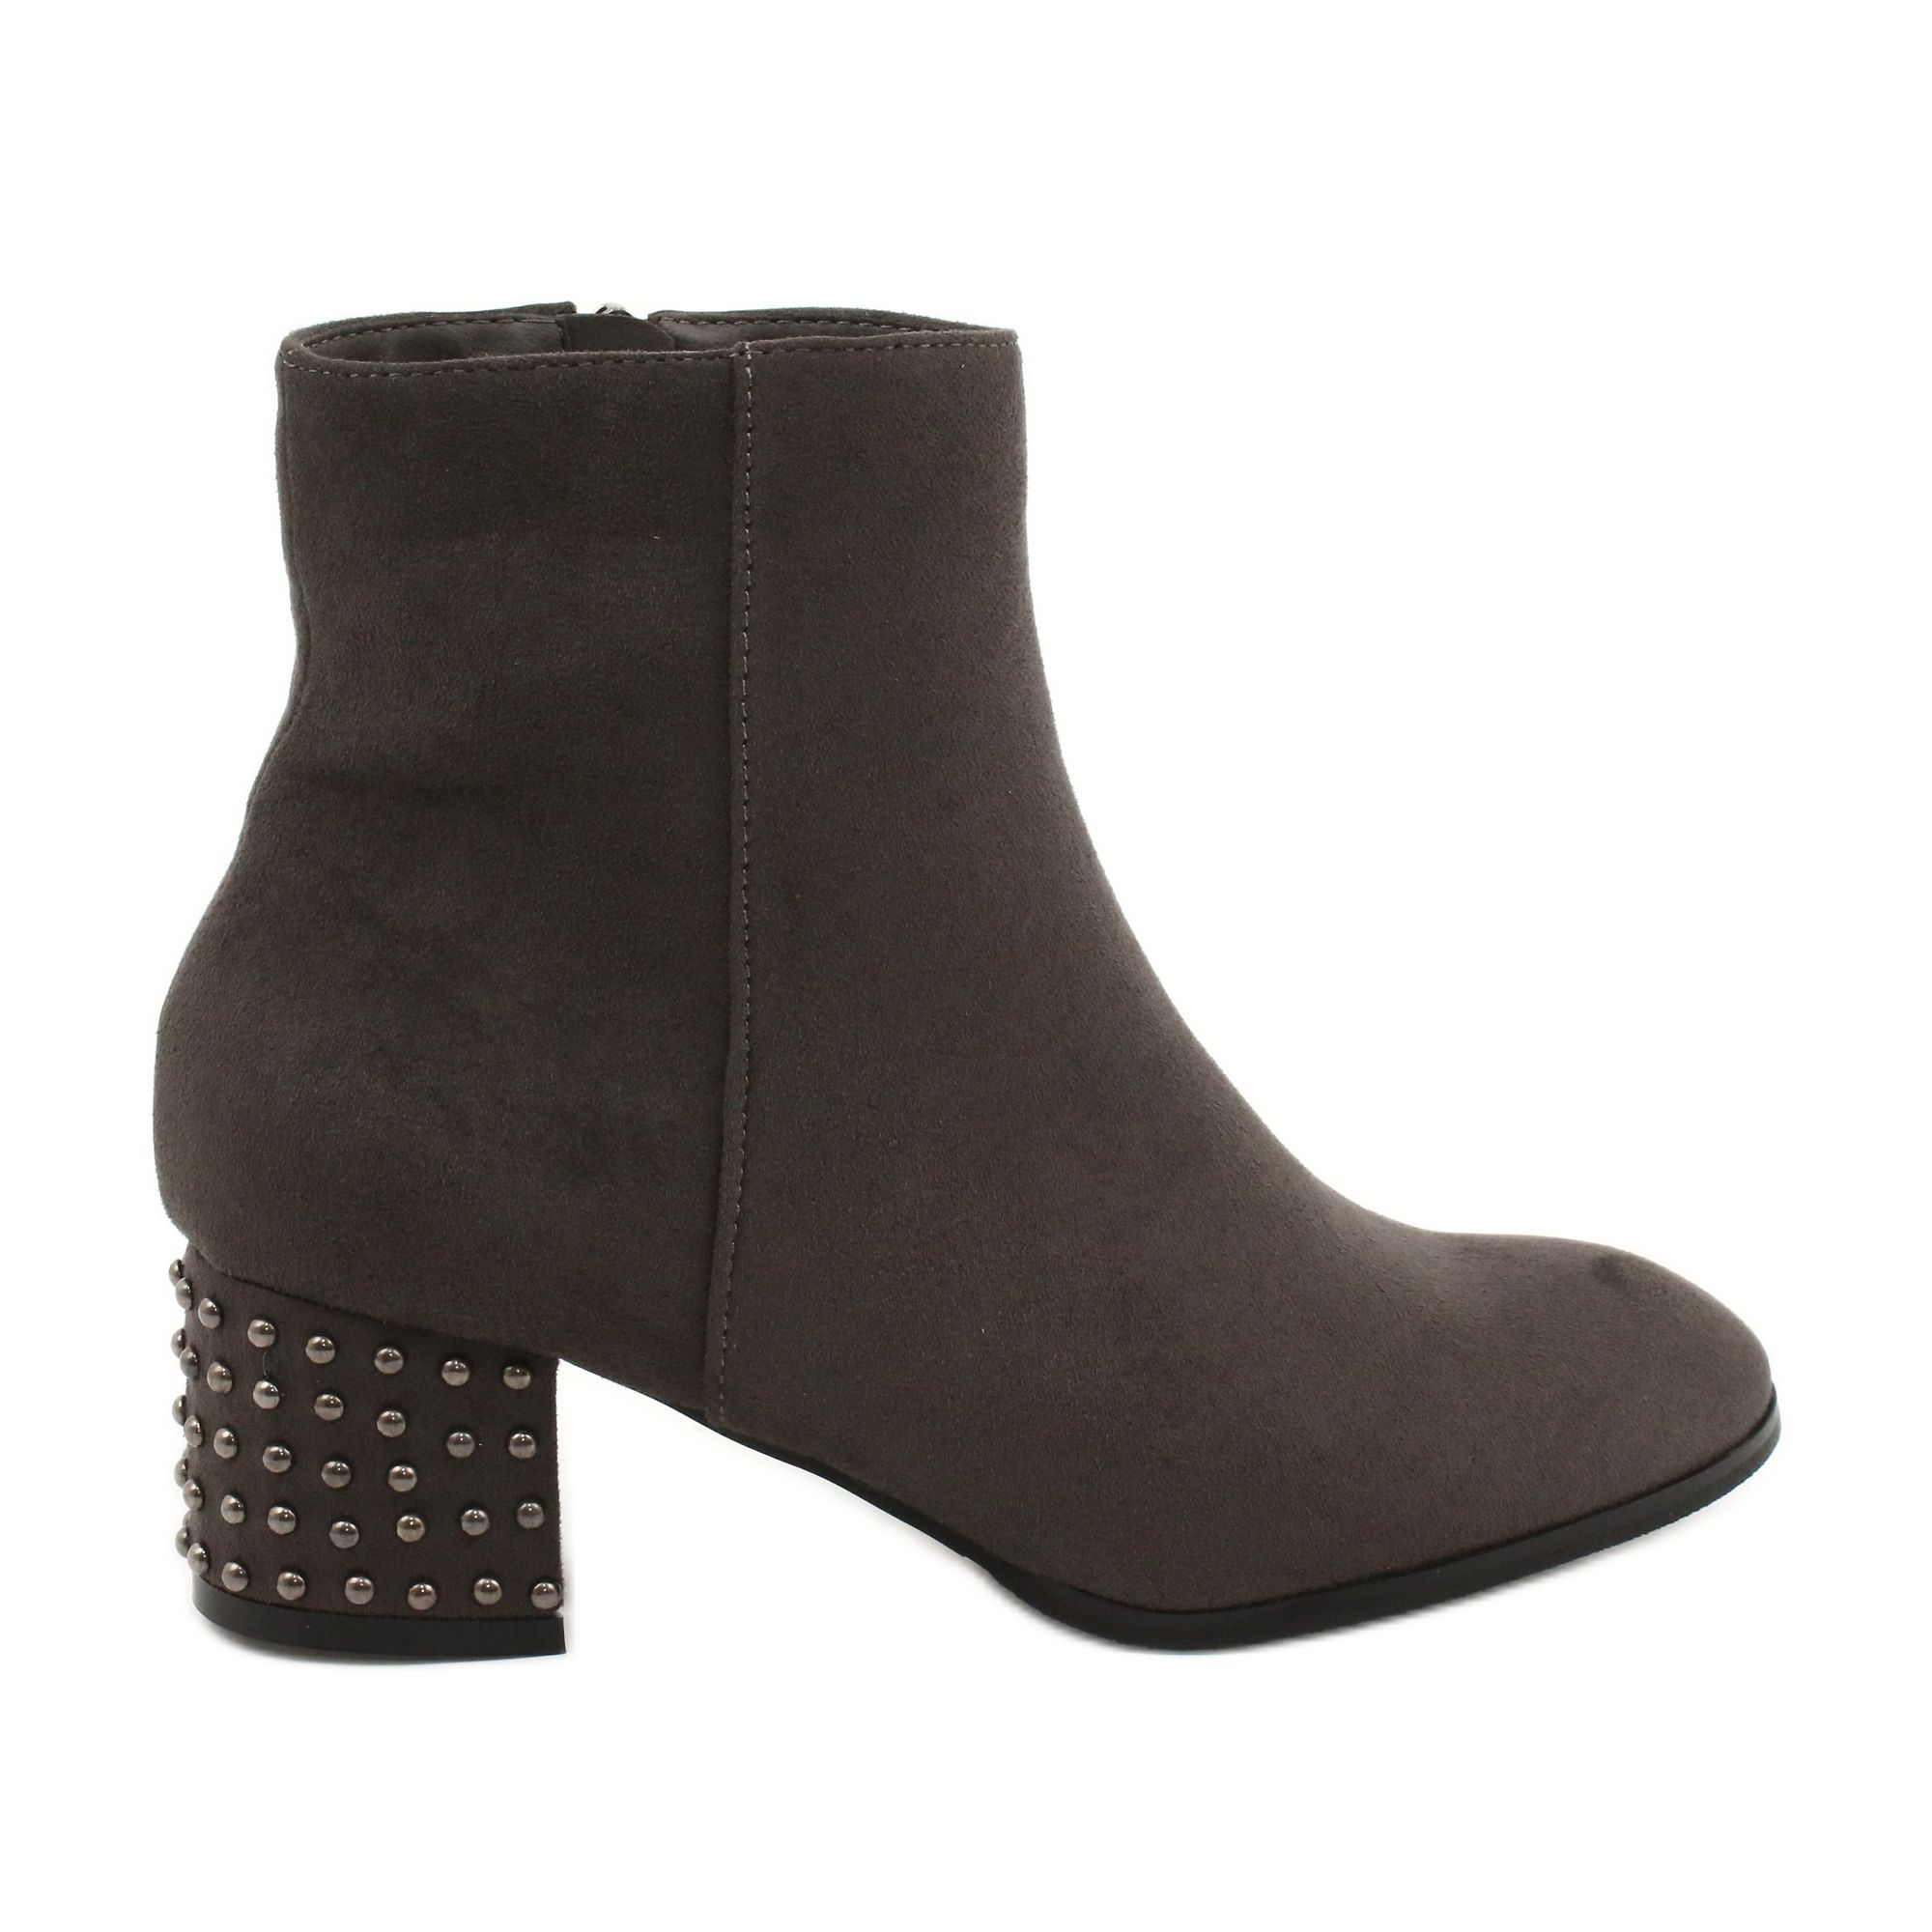 Botki Na Obcasie Filippo 540 Szare Boots Shoes Women Heels Womens Boots